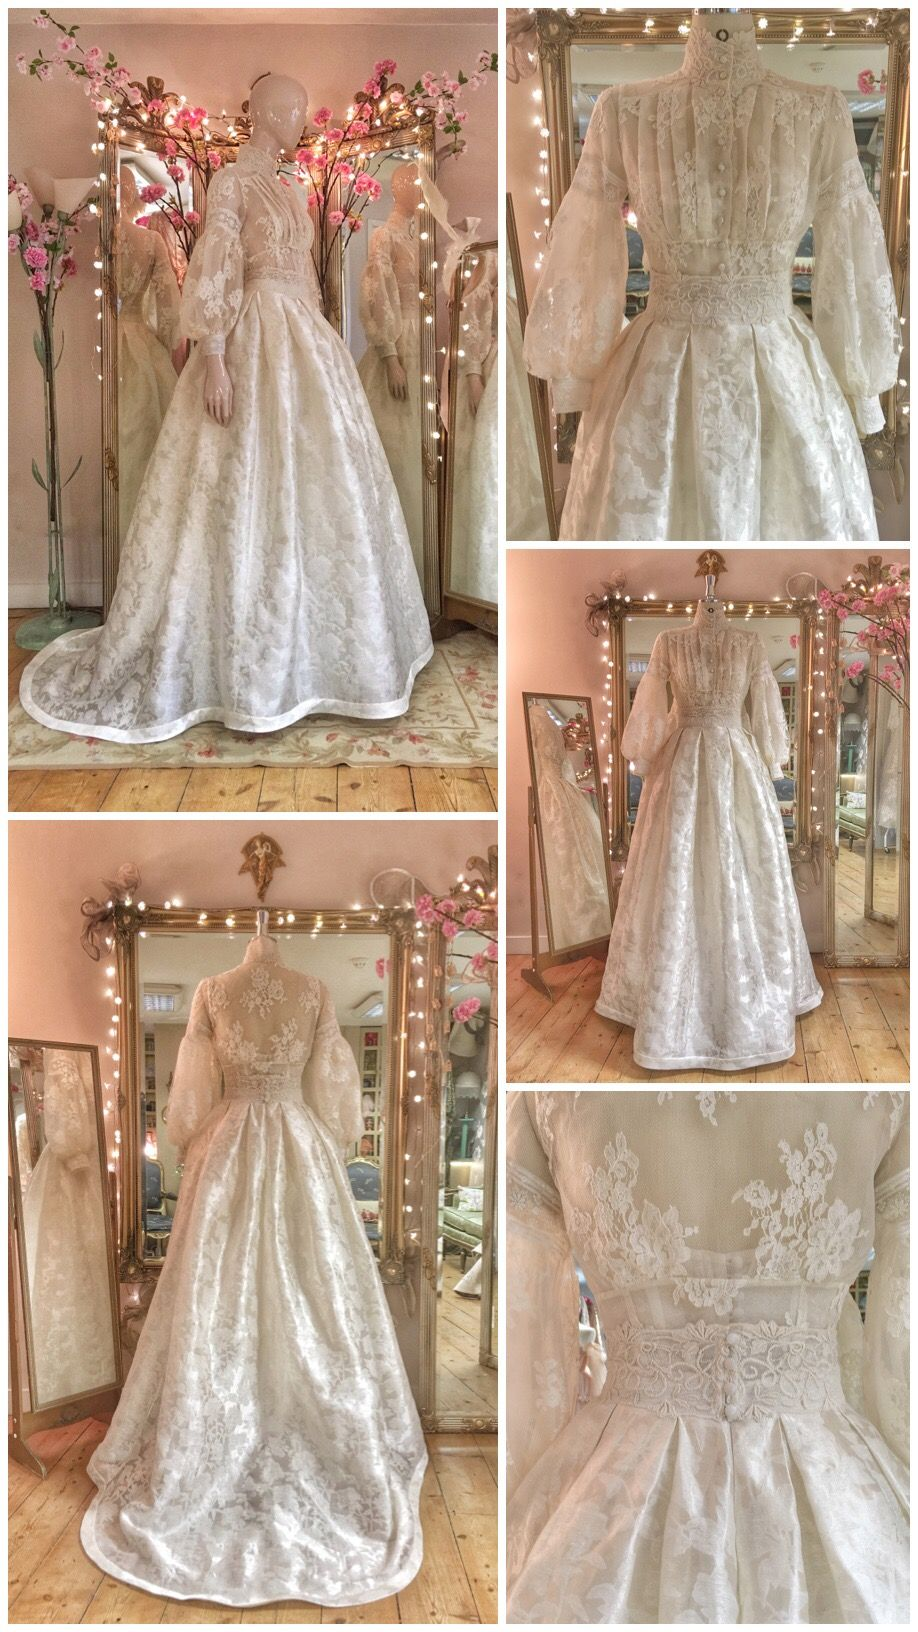 Edwardian Lace Wedding Dress With A High Neck Blouse And Silk